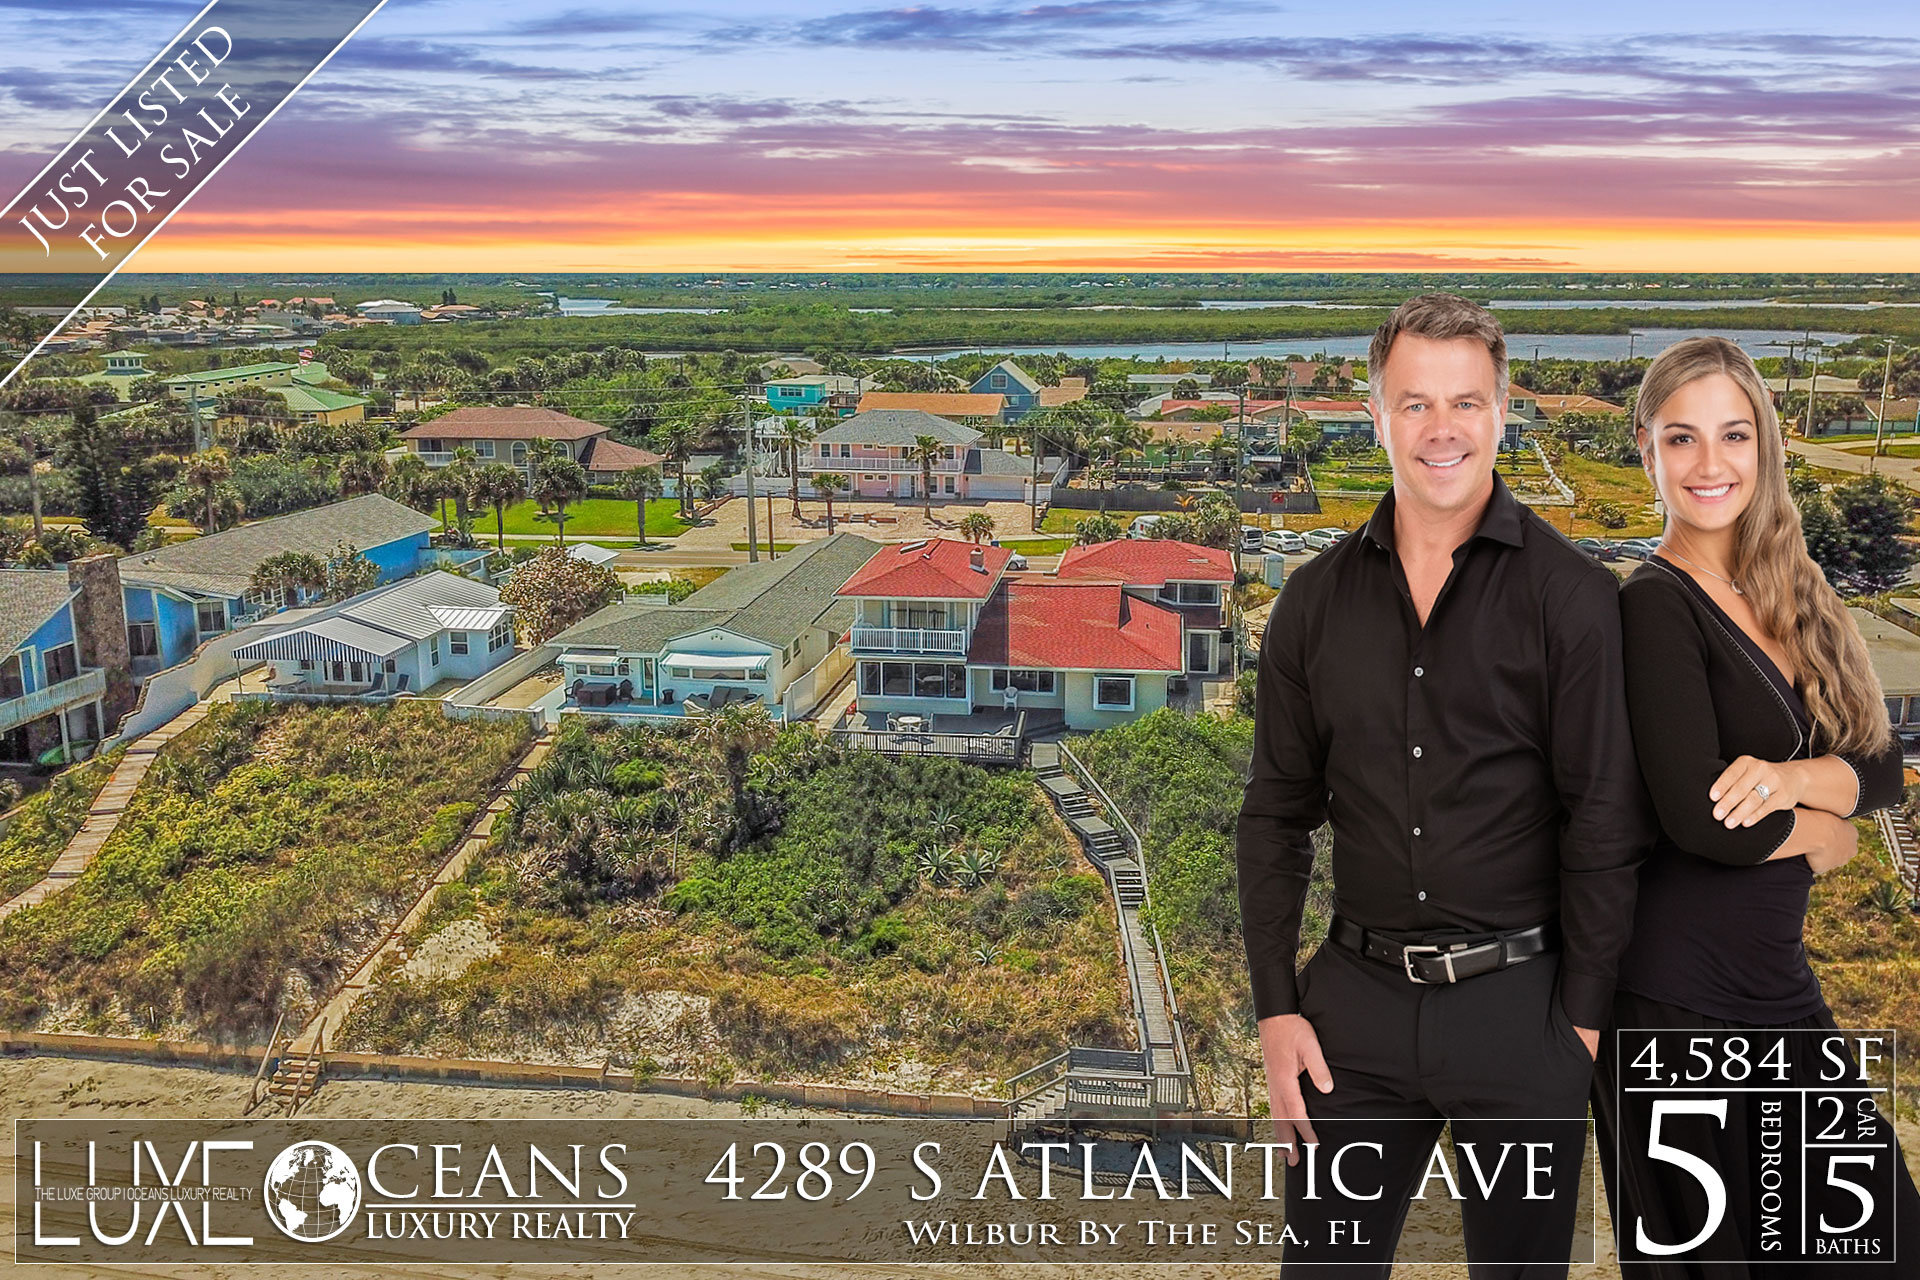 Ponce Inlet Oceanfront Homes For Sale - 4289 S Atlantic Ave Waterfront Homes For Sale